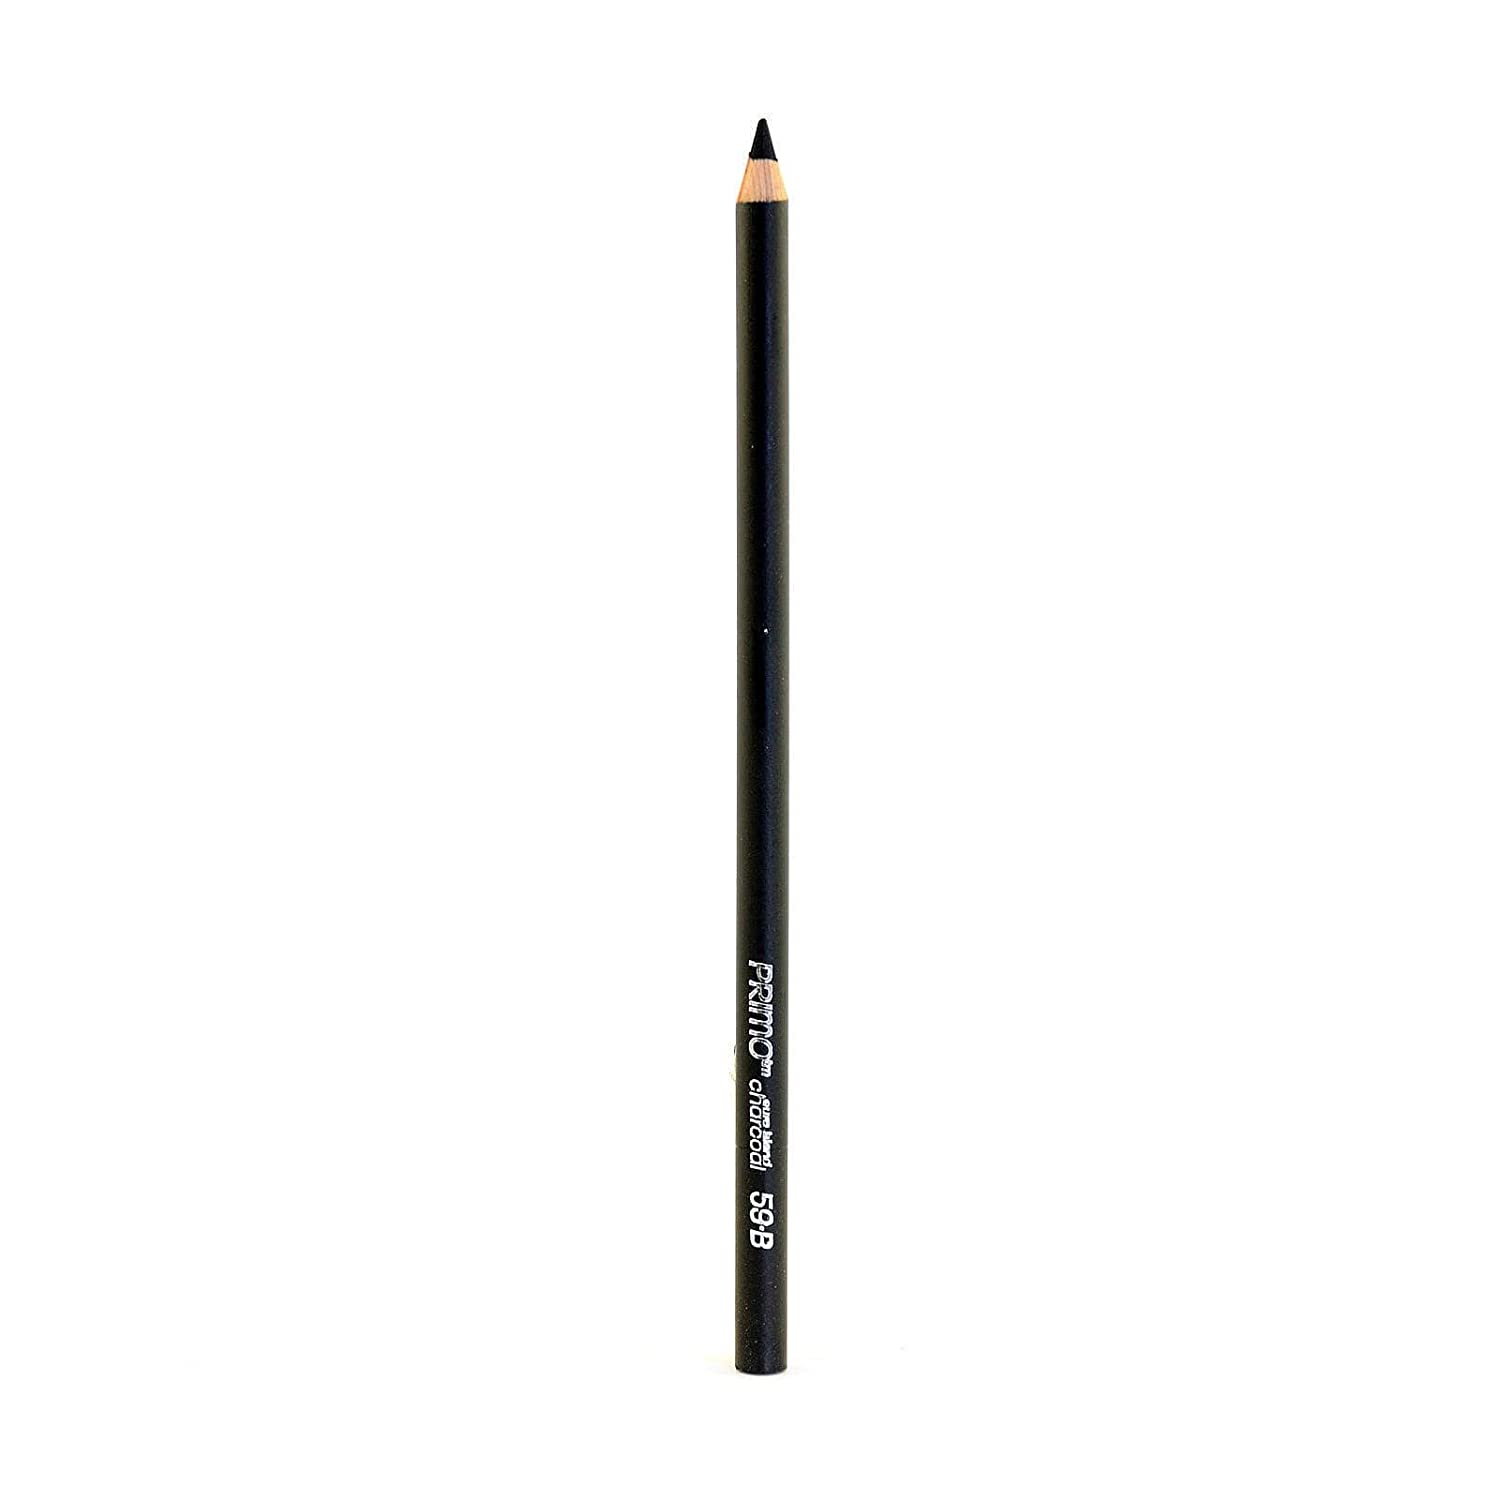 PACK OF 12 Generals Primo Euro Blend Charcoal pencils HB charcoal